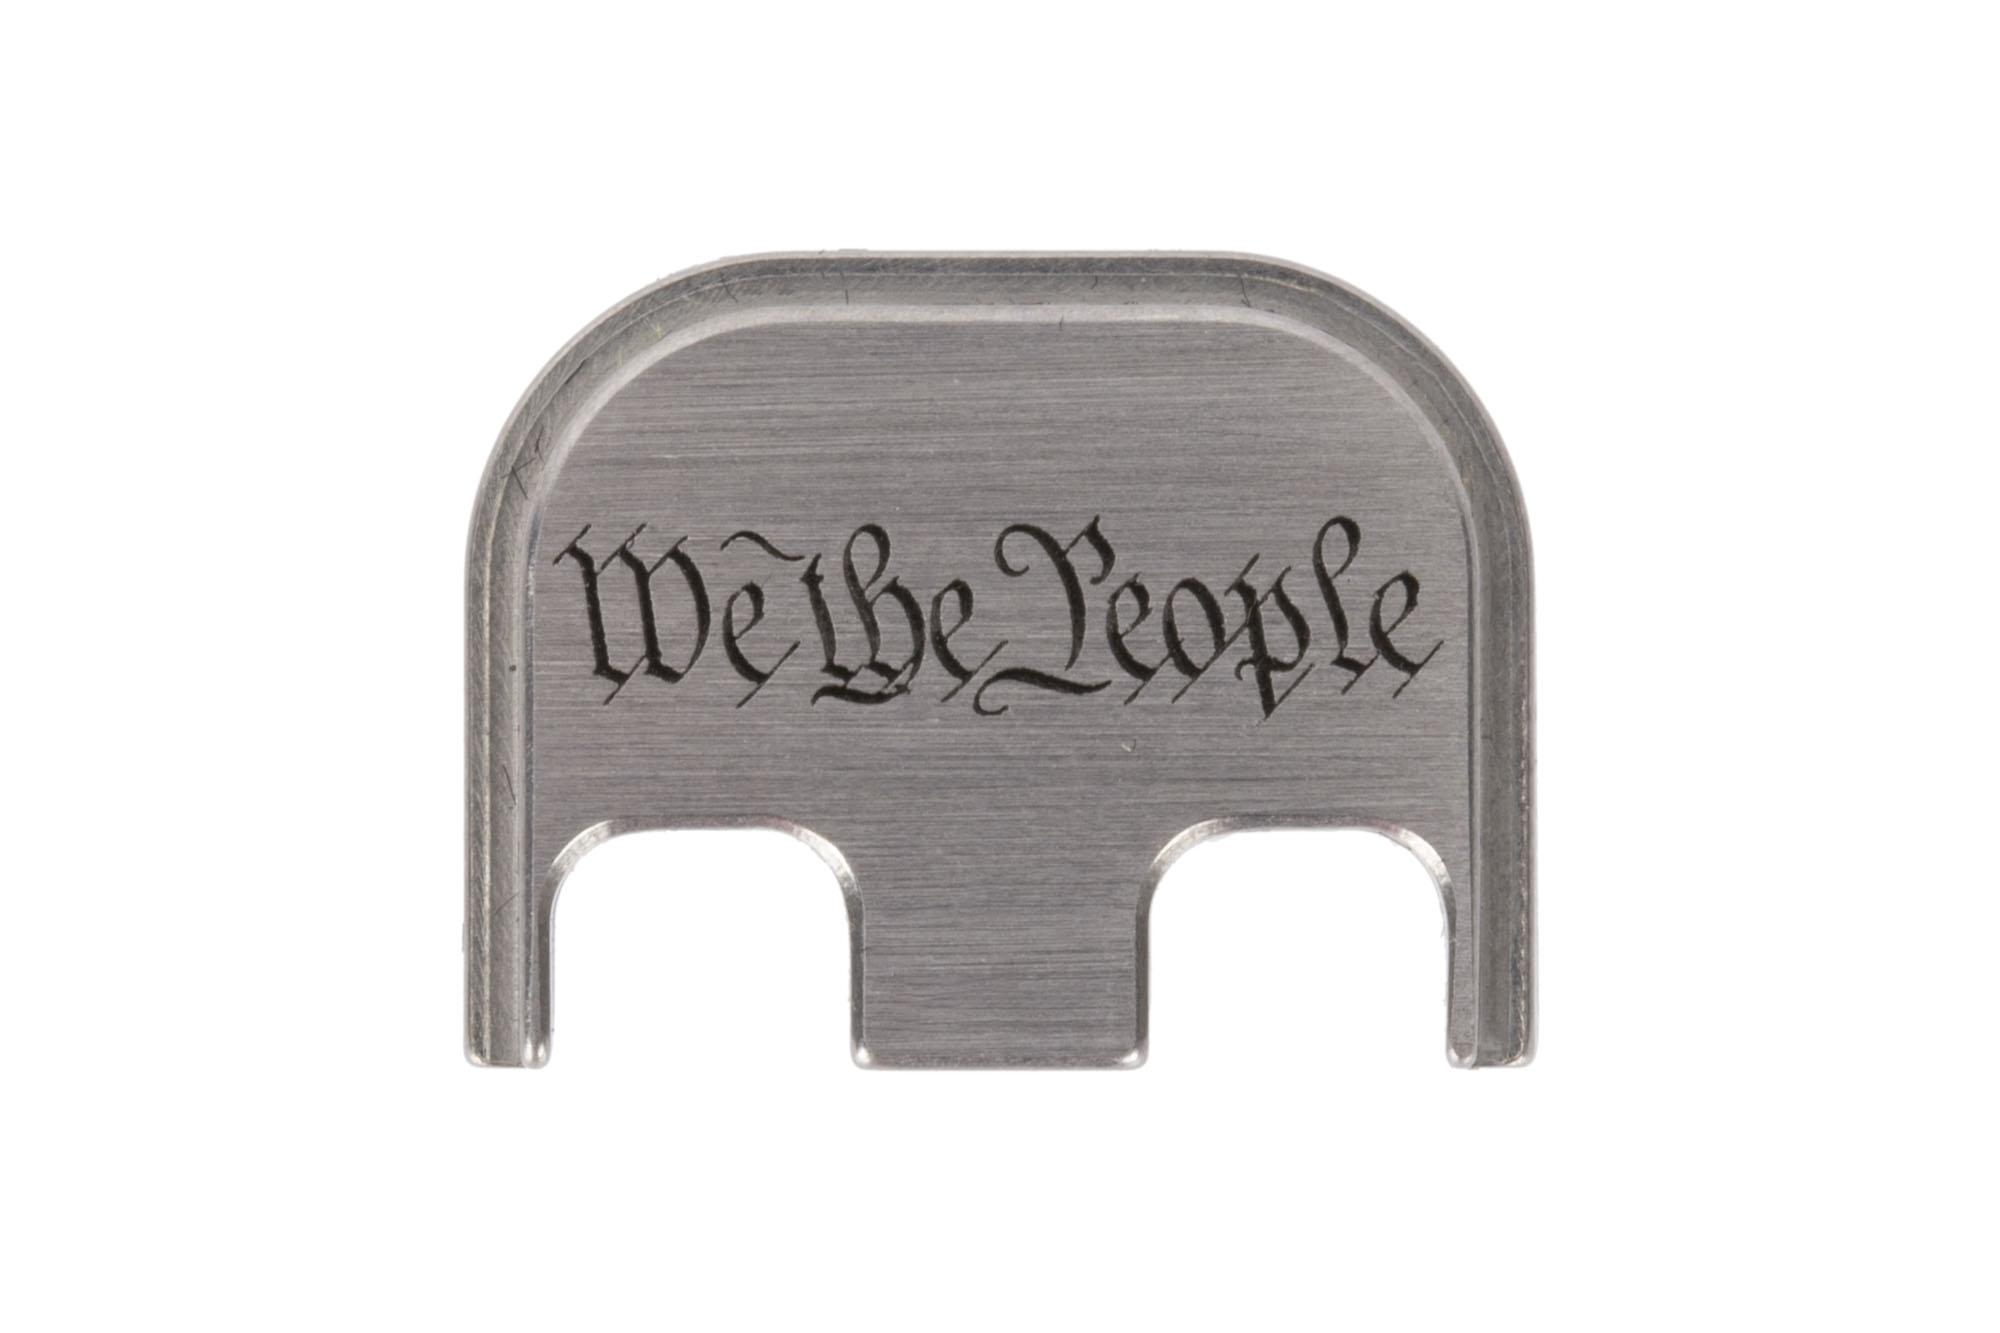 Classy Raptor Tactical We The People Standard Stainless Steel Glock Back Plate - Brushed